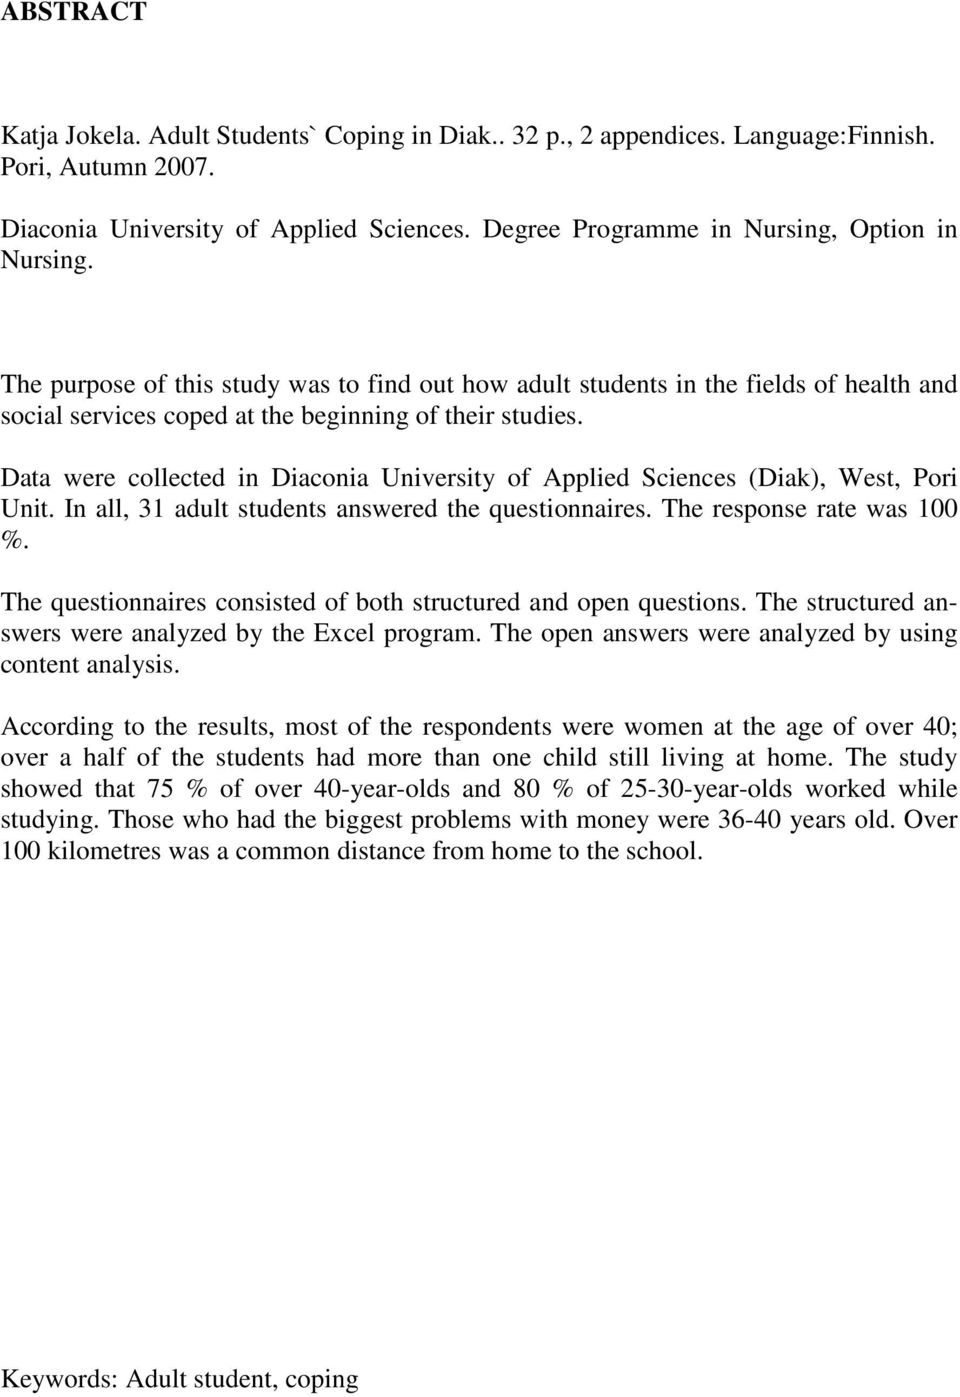 Data were collected in Diaconia University of Applied Sciences (Diak), West, Pori Unit. In all, 31 adult students answered the questionnaires. The response rate was 100 %.